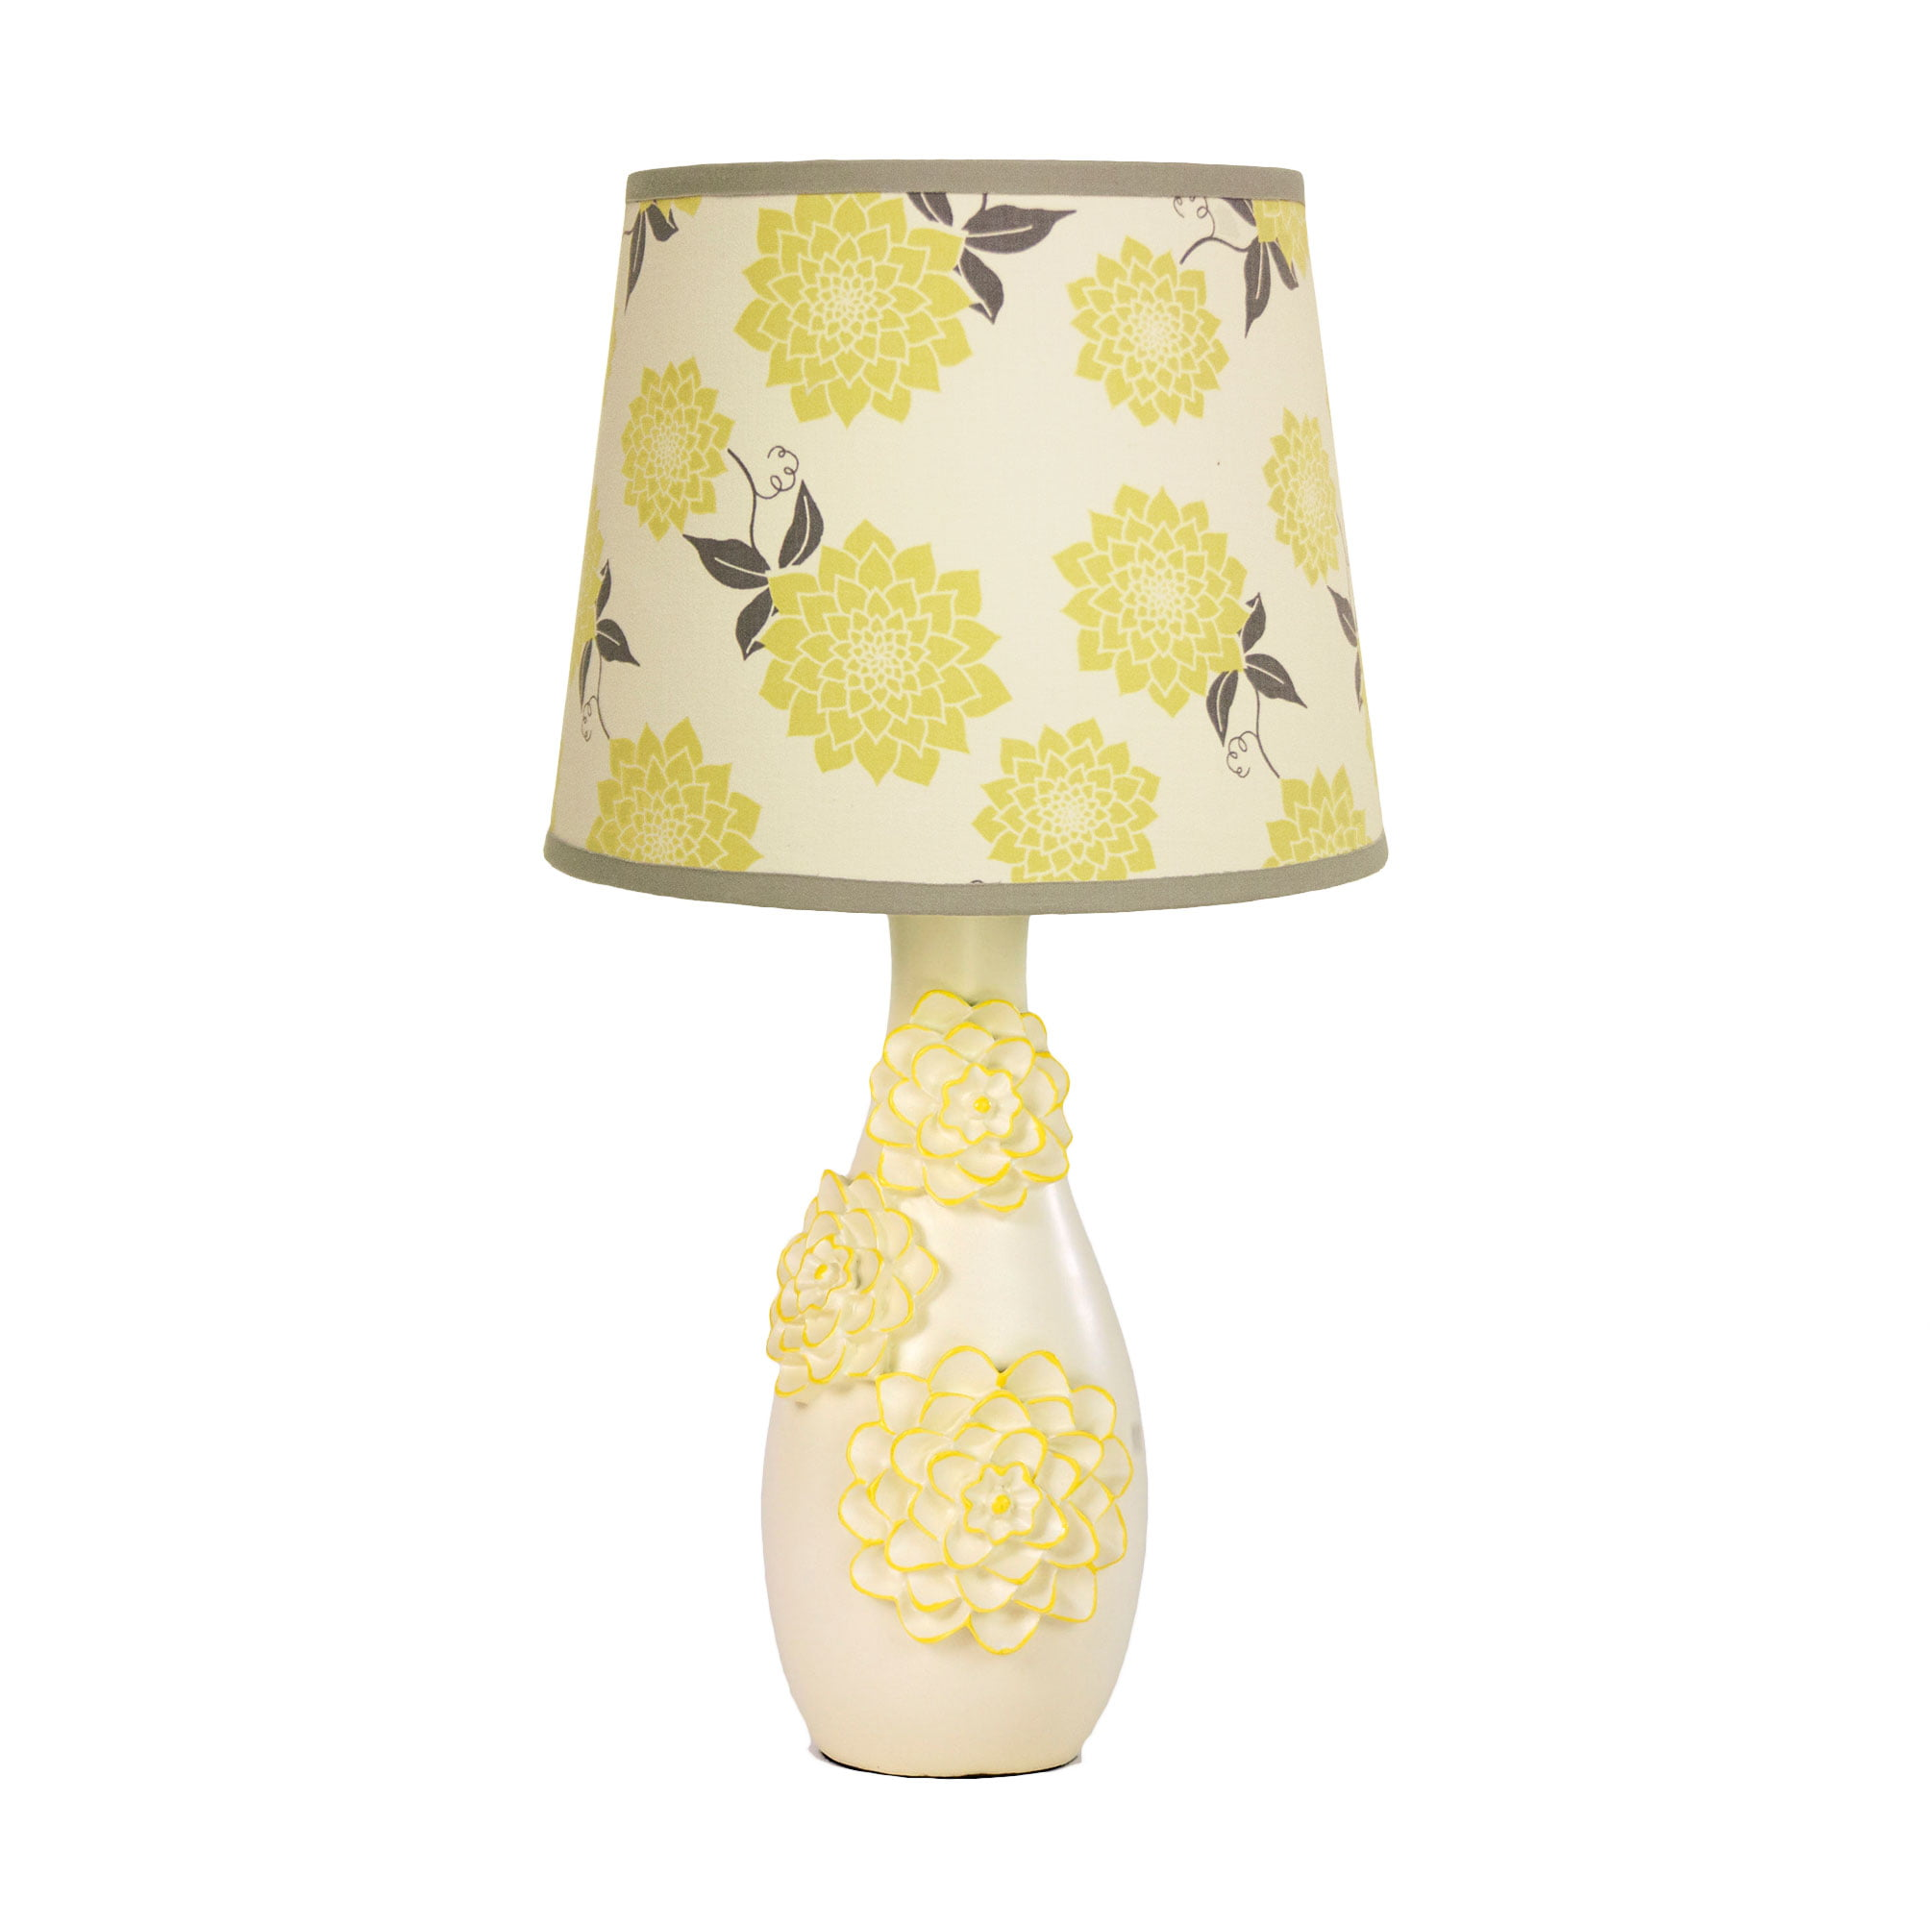 The Peanut Shell Stella Lamp with Shade by Peanut Shell